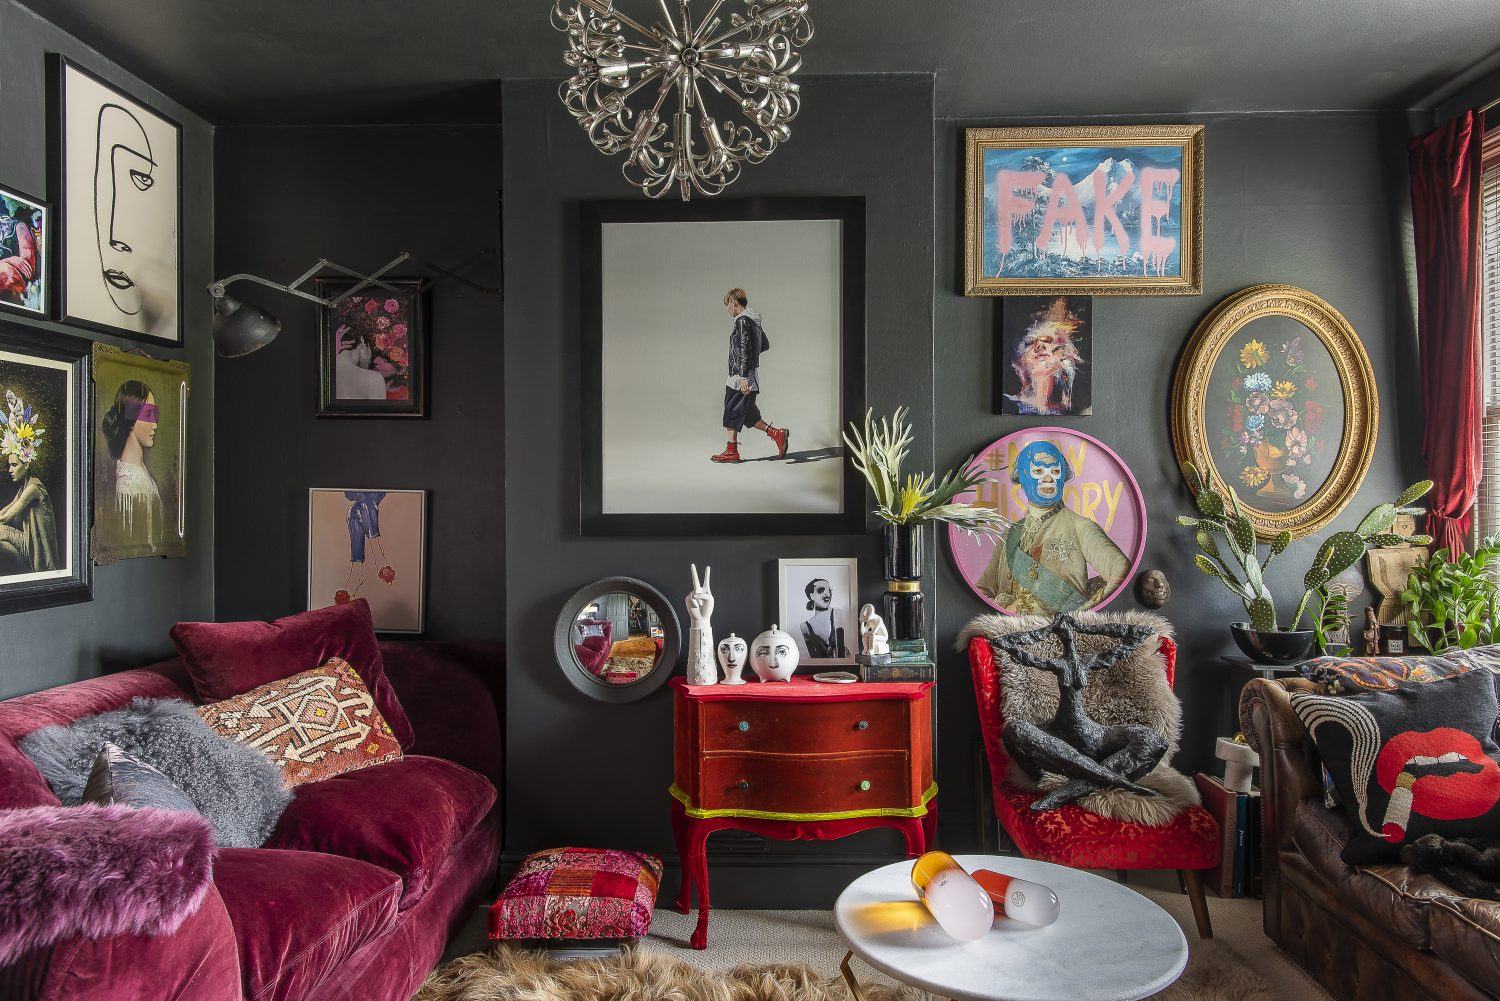 The almost black walls of the sitting room provide the perfect backdrop for Jaz's collection of artworks